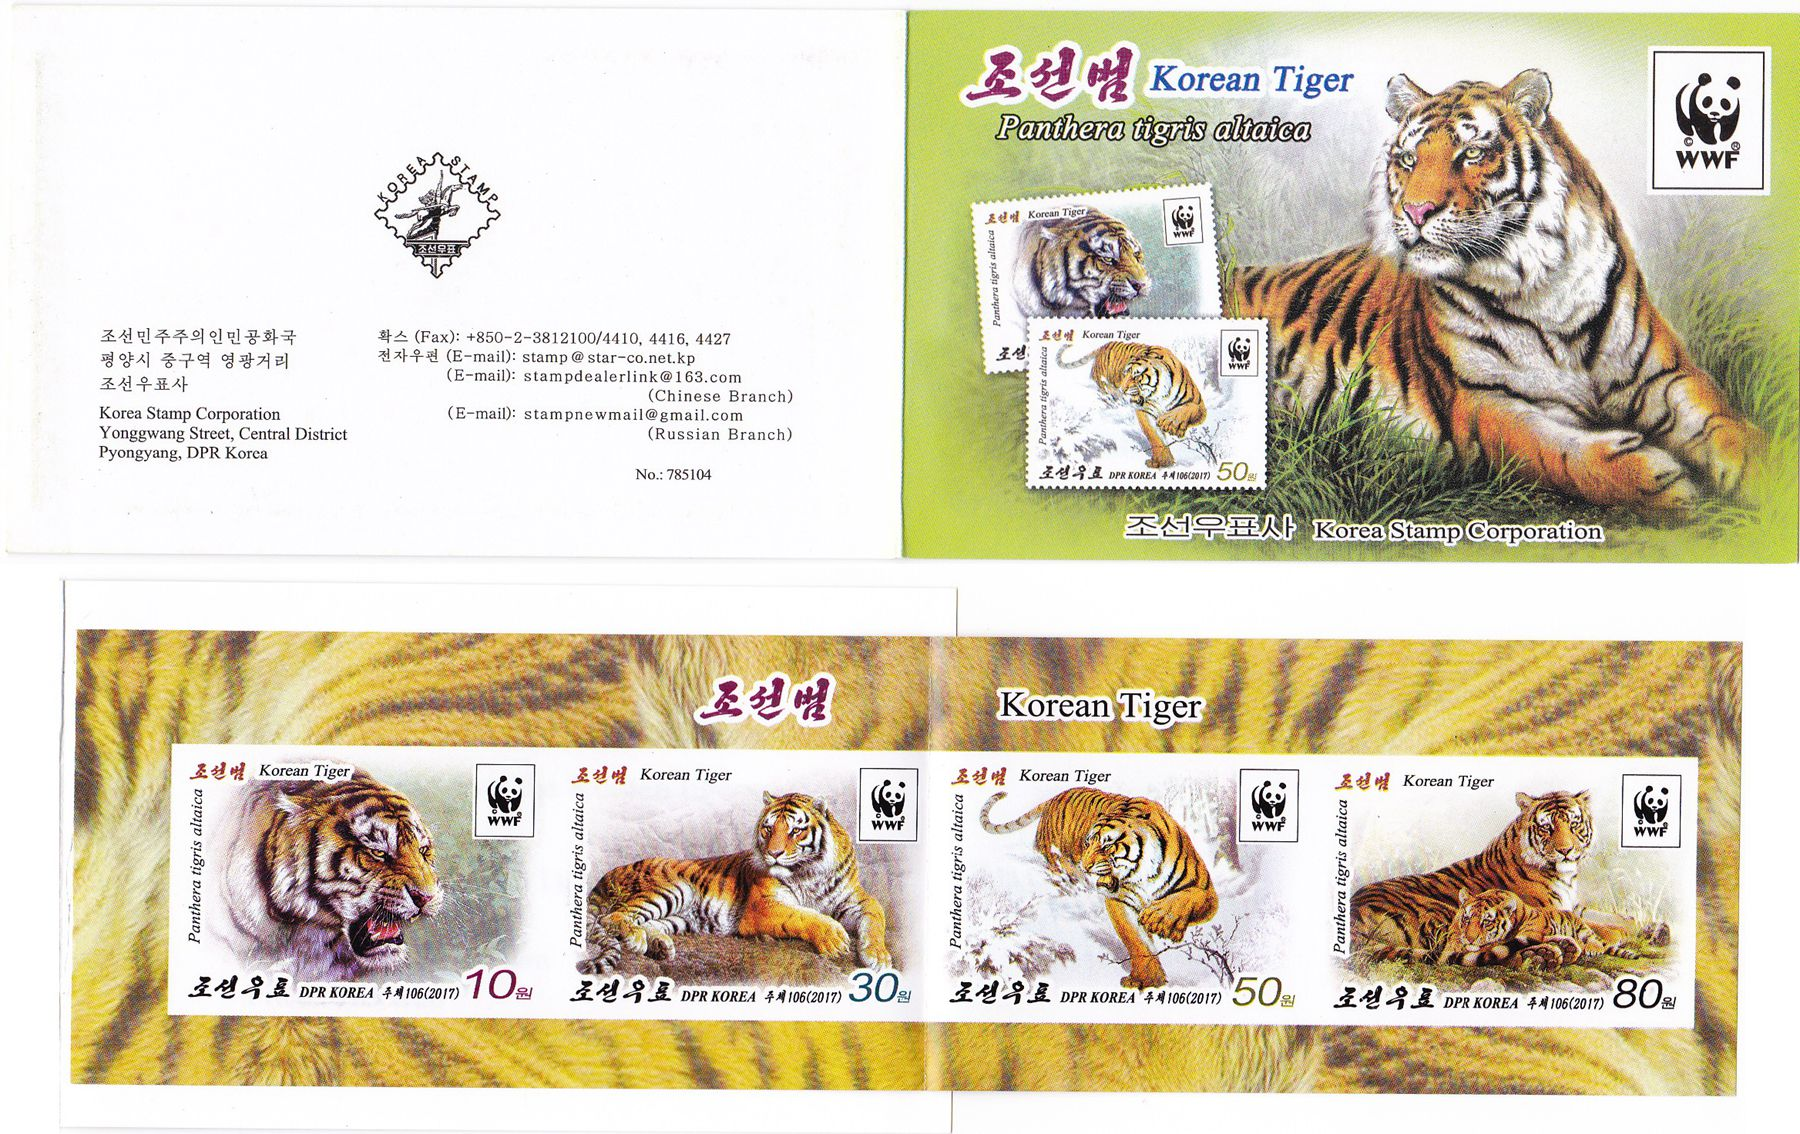 L9030, Korea Stamp Booklet, 2017 Korean Tiger, Rare Imperforate